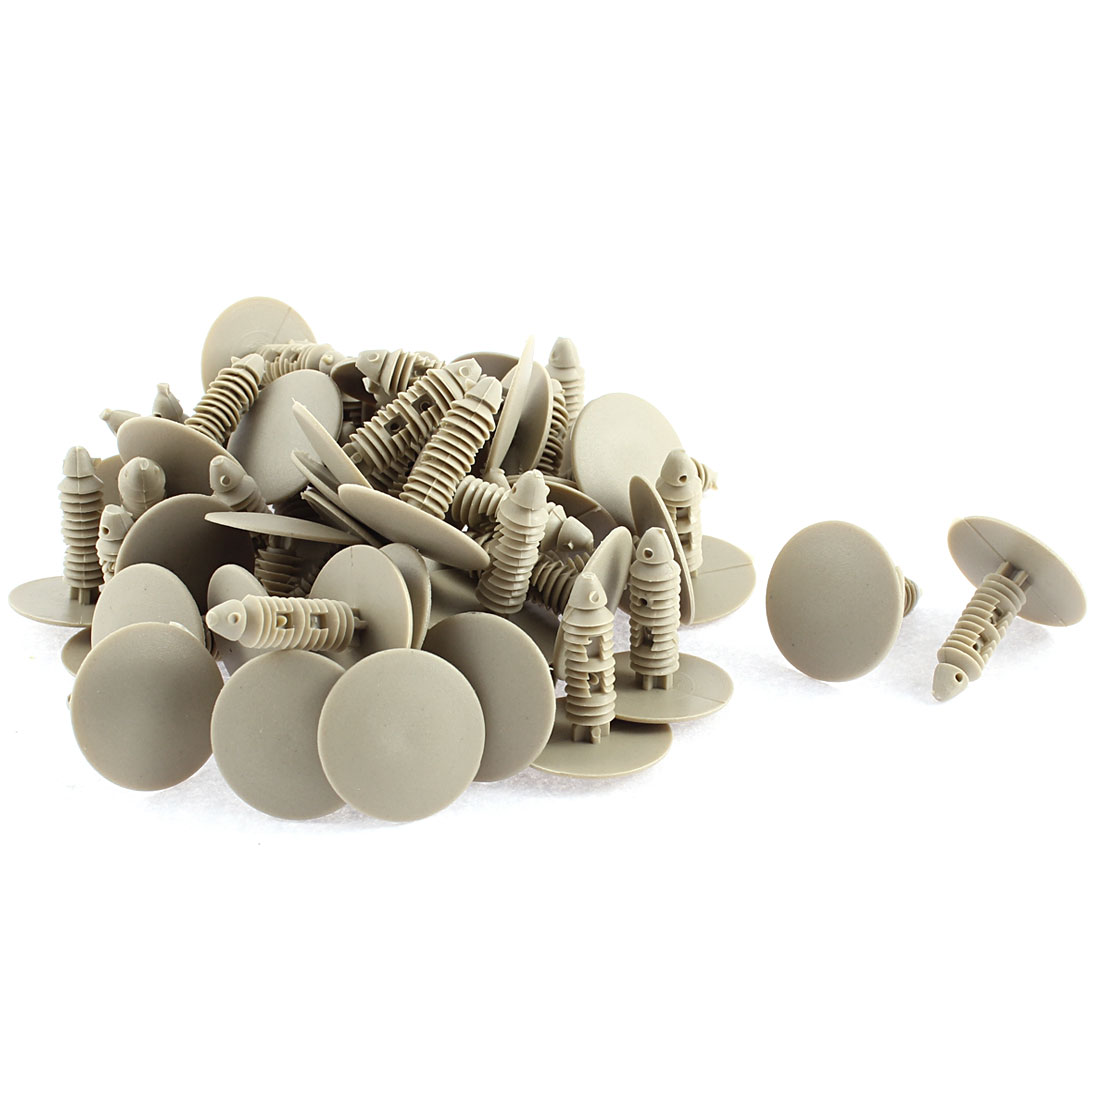 50Pcs Plastic Car Truck Splash Guard Fastener Retainer 26mm Head Beige